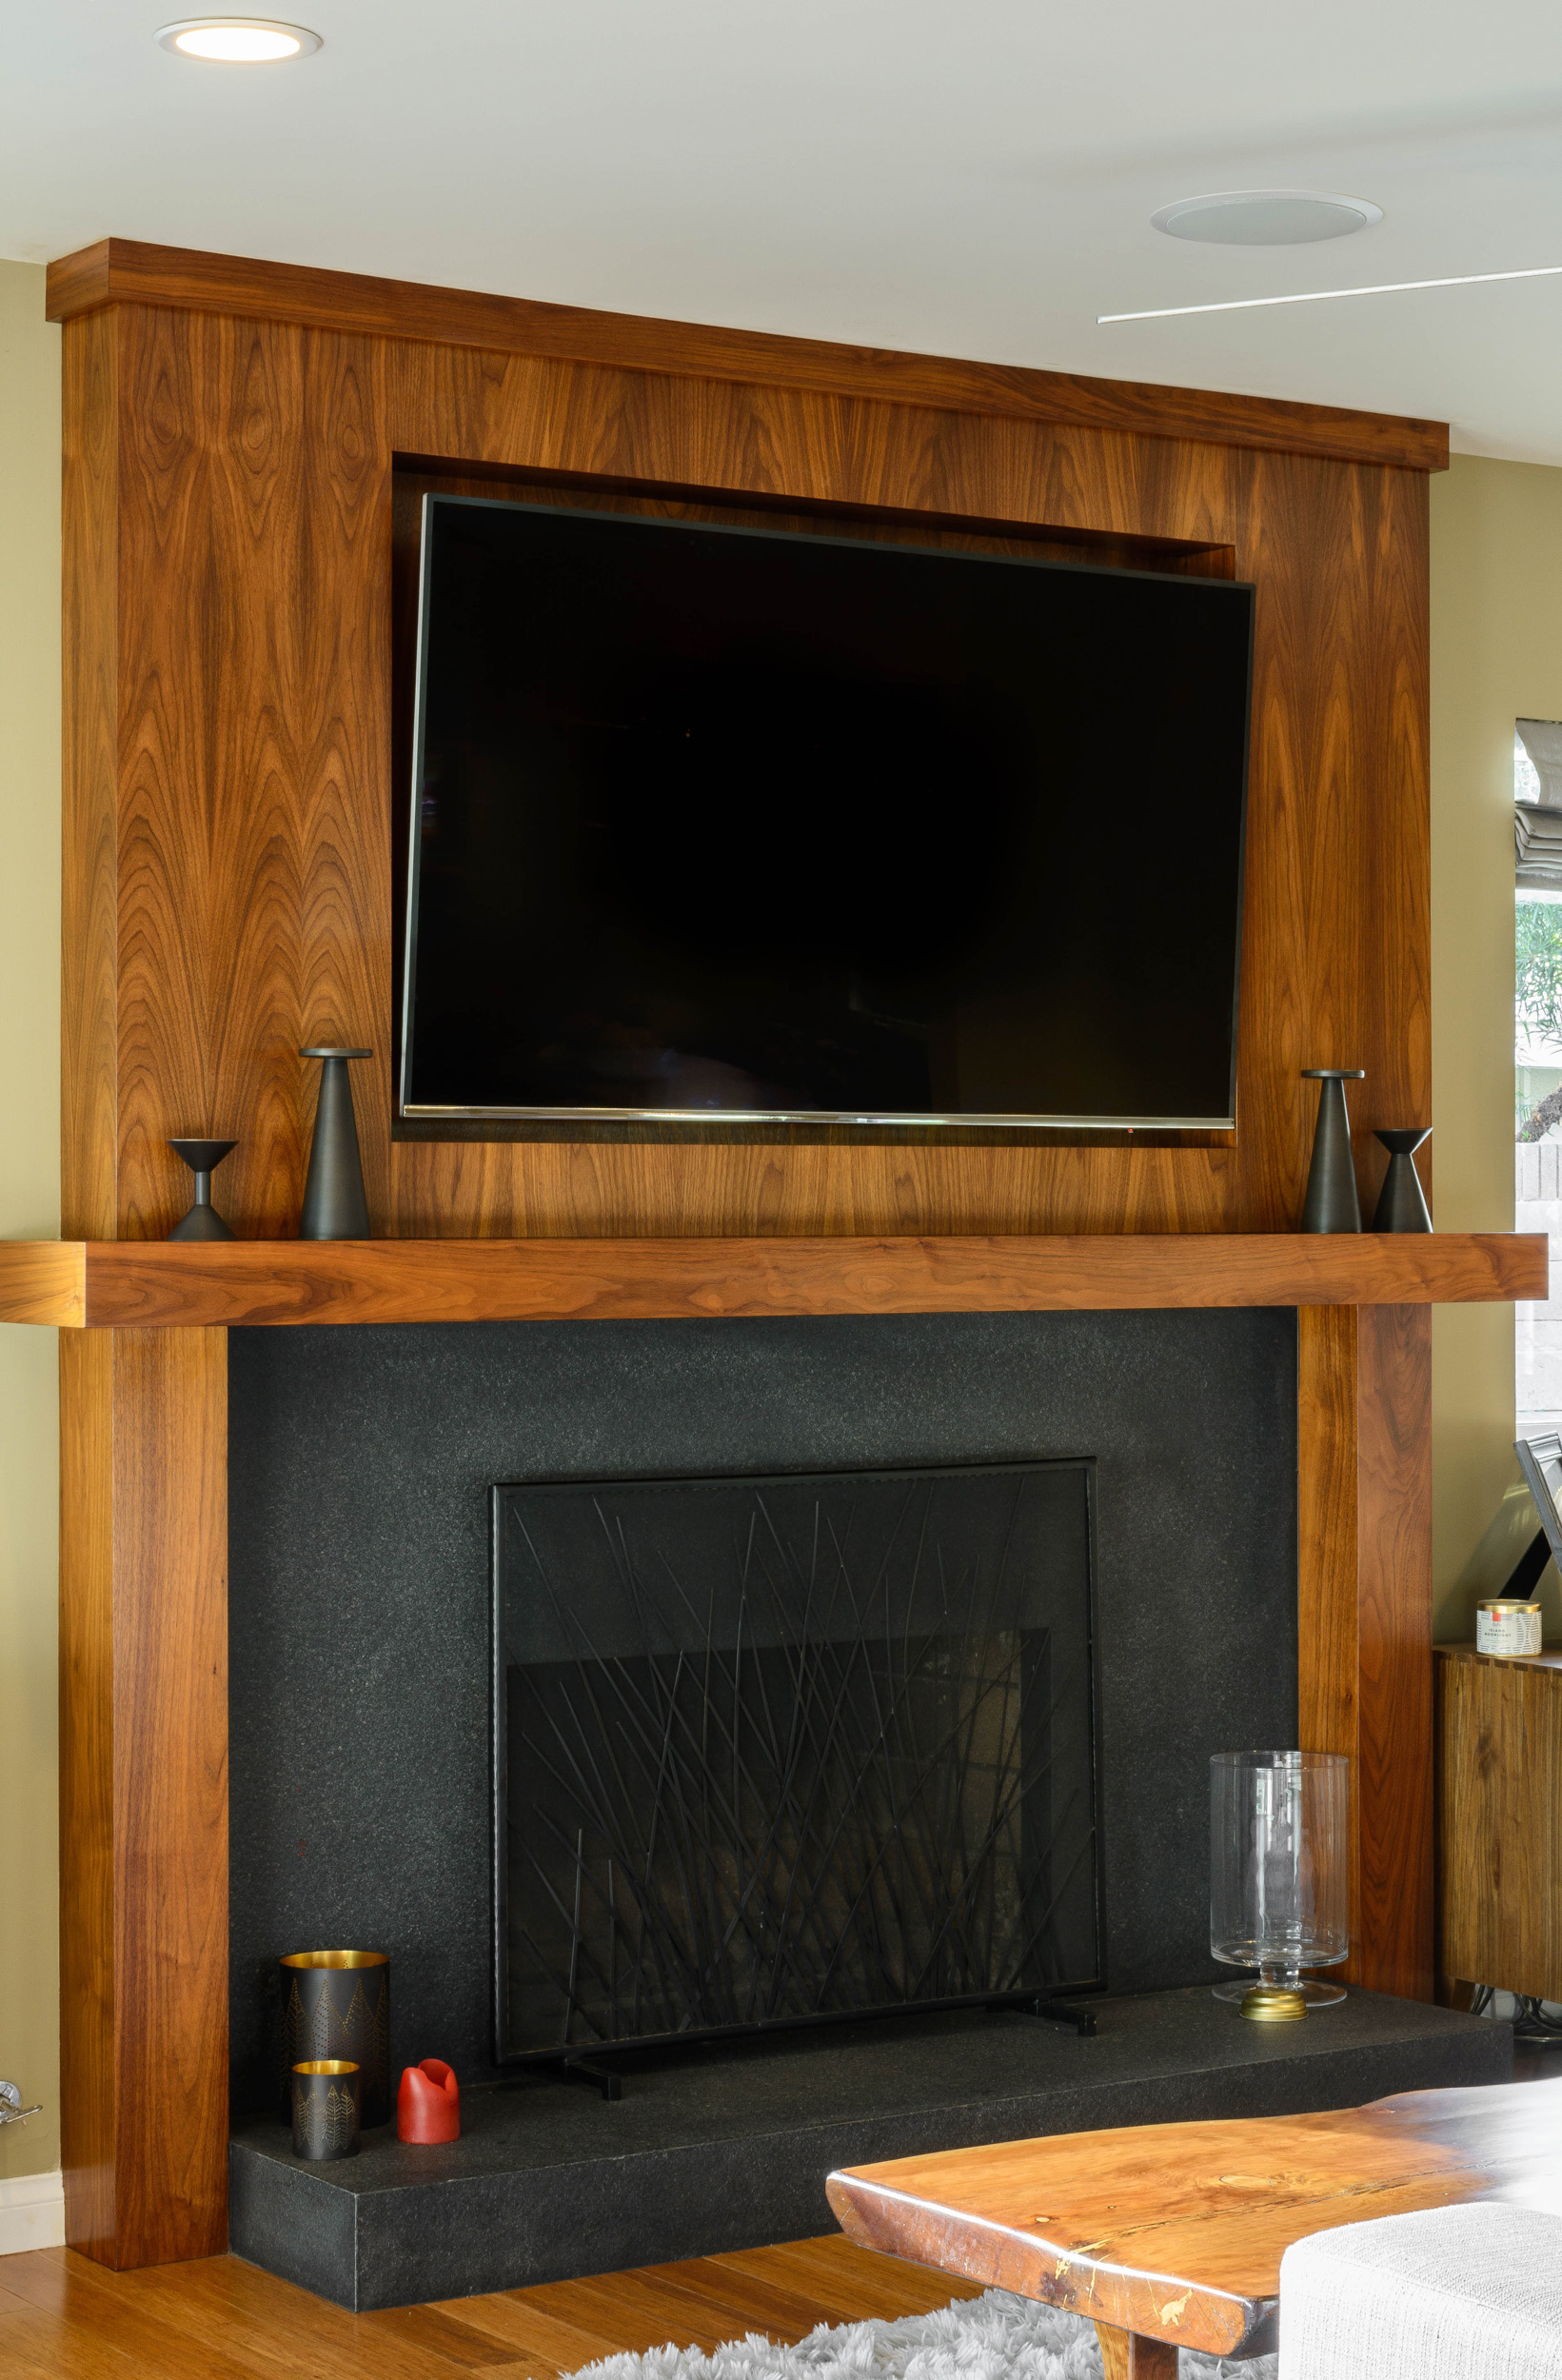 Fireplace with a stone hearth and custom-built walnut surround